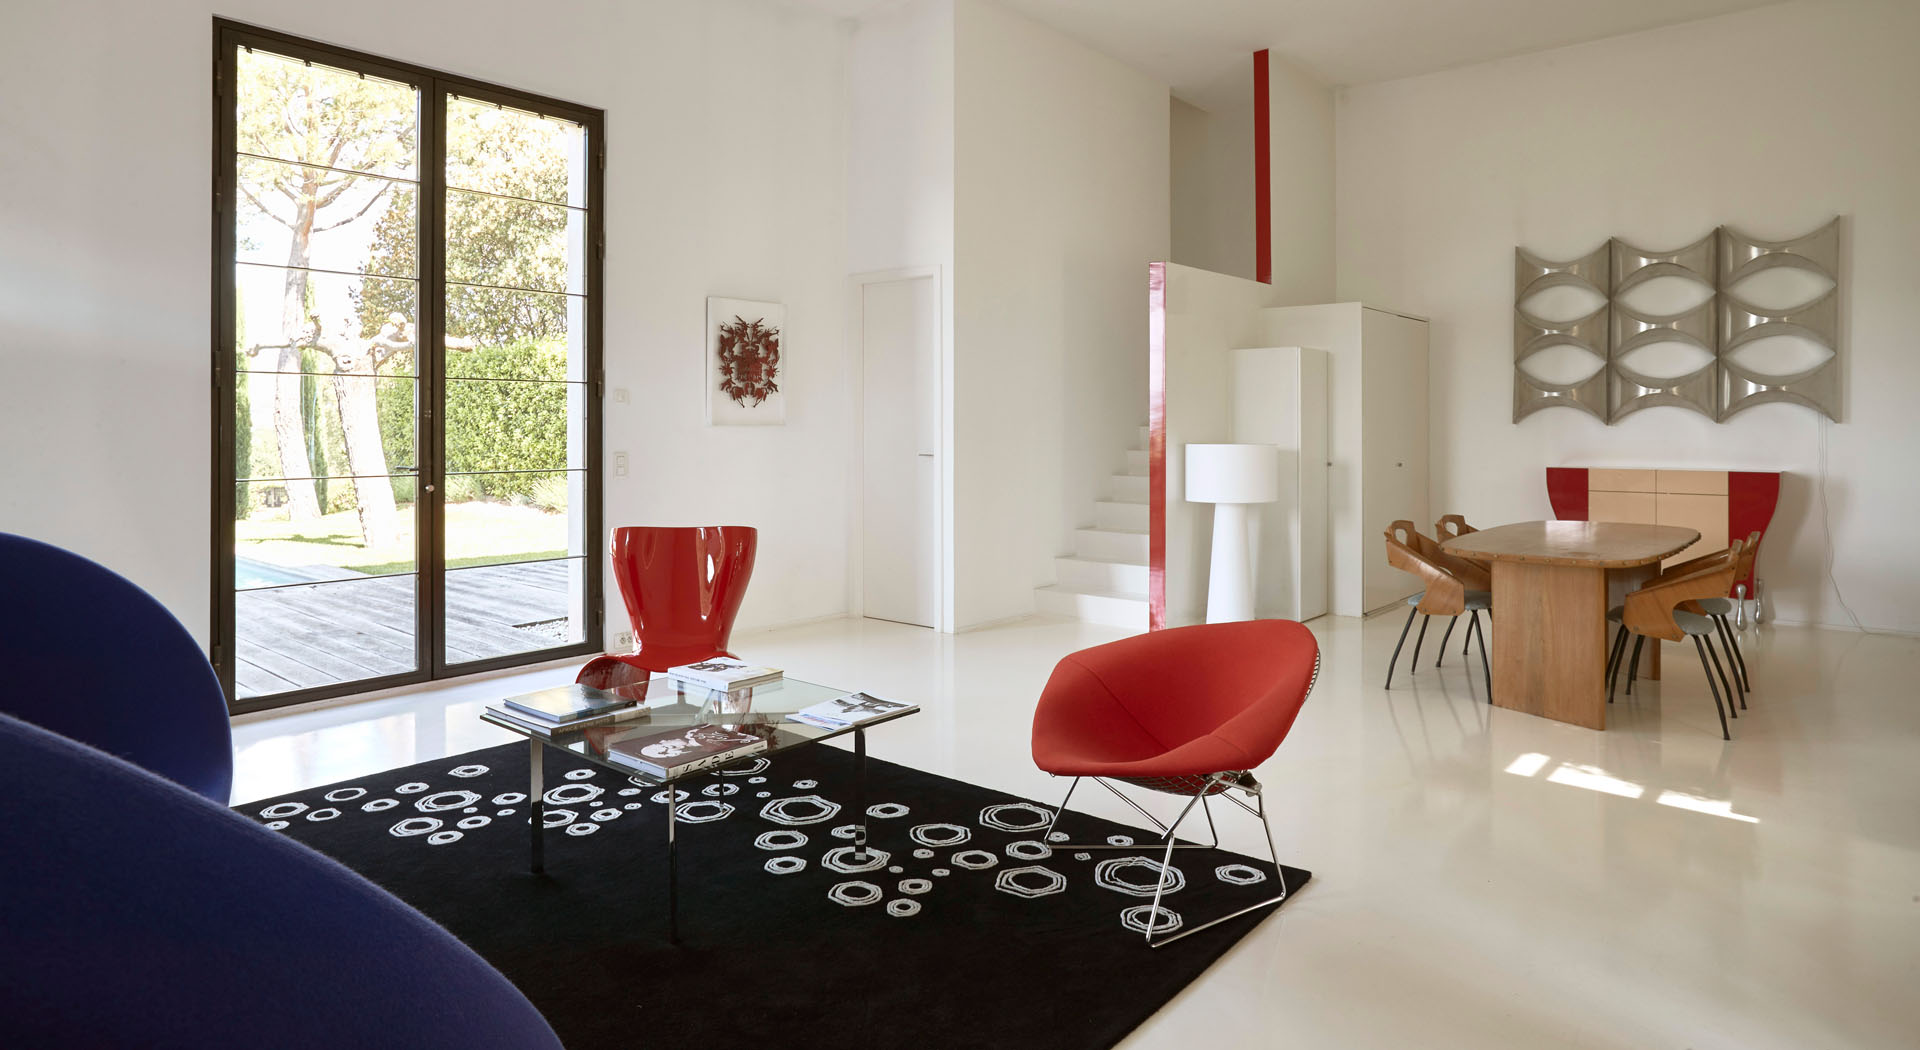 10/Photos/Rooms/Maisons/Rouge/ANDEOLS01718warm1.jpg